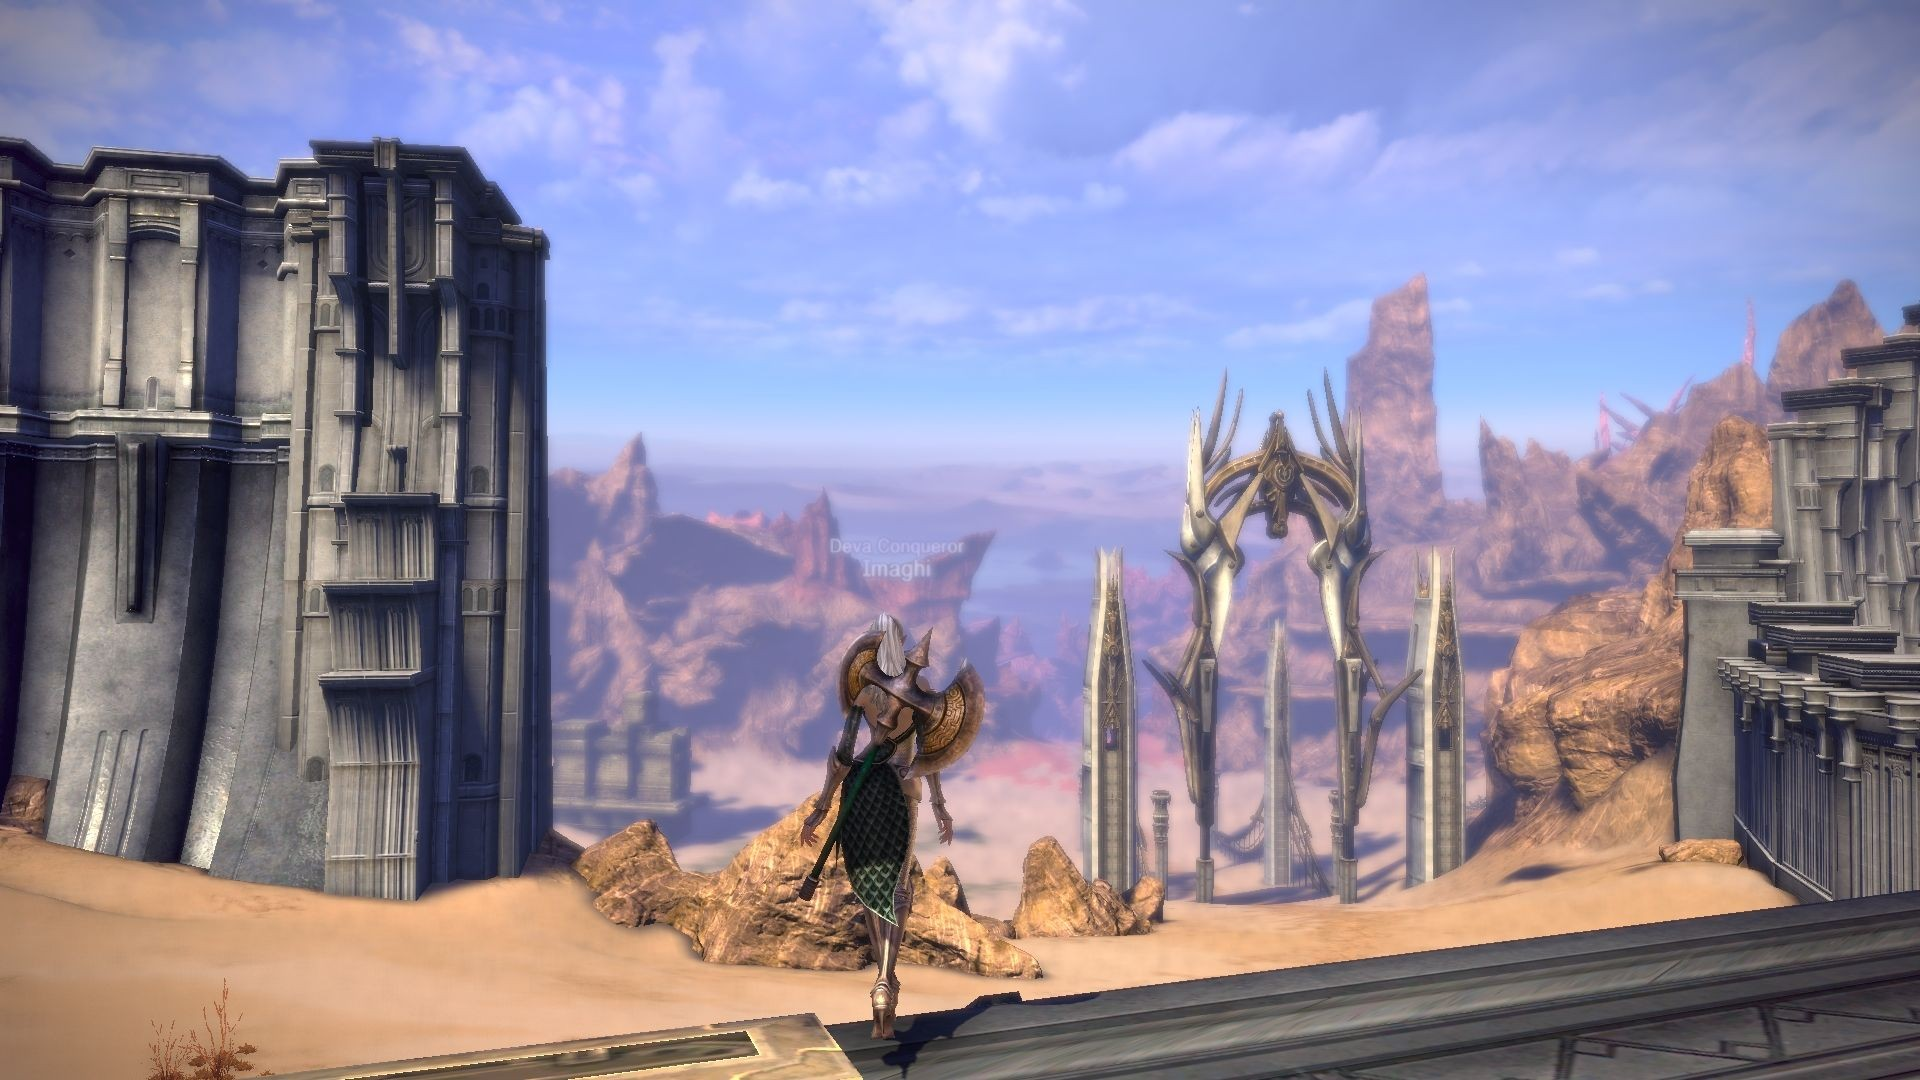 TERA: Rising - Community event, not my photo. The rest found here: http://imgur.com/a/7QkOe